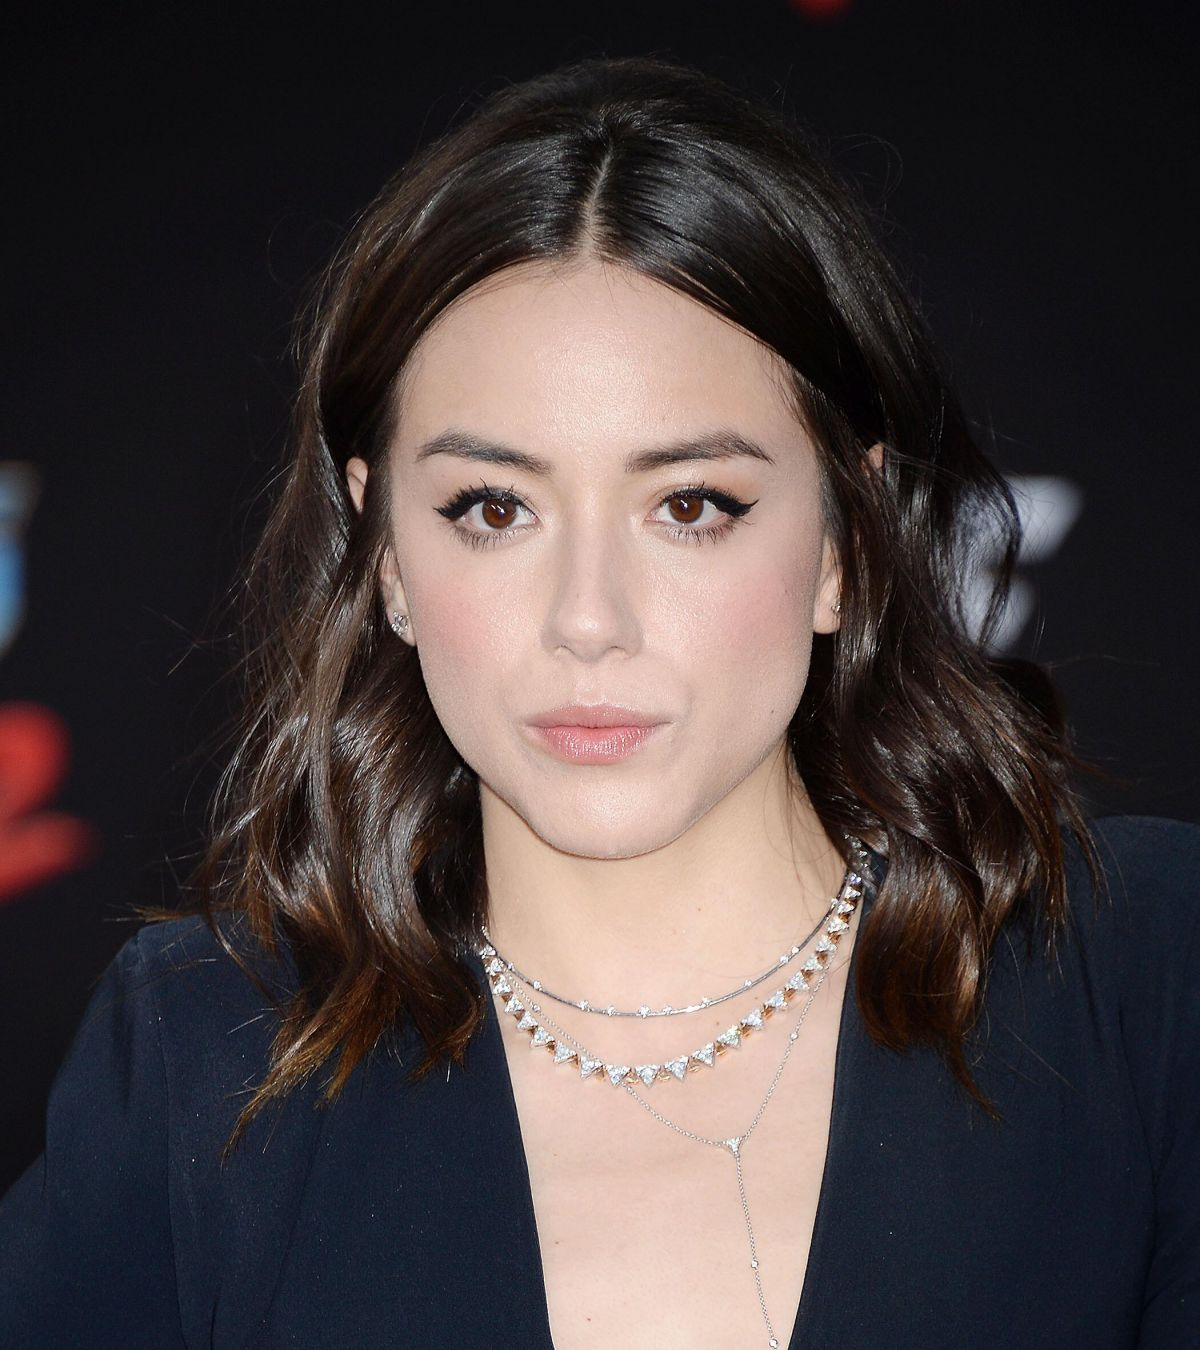 CHLOE BENNET at Guardians of the Galaxy Vol. 2 Premiere in ...  CHLOE BENNET at...